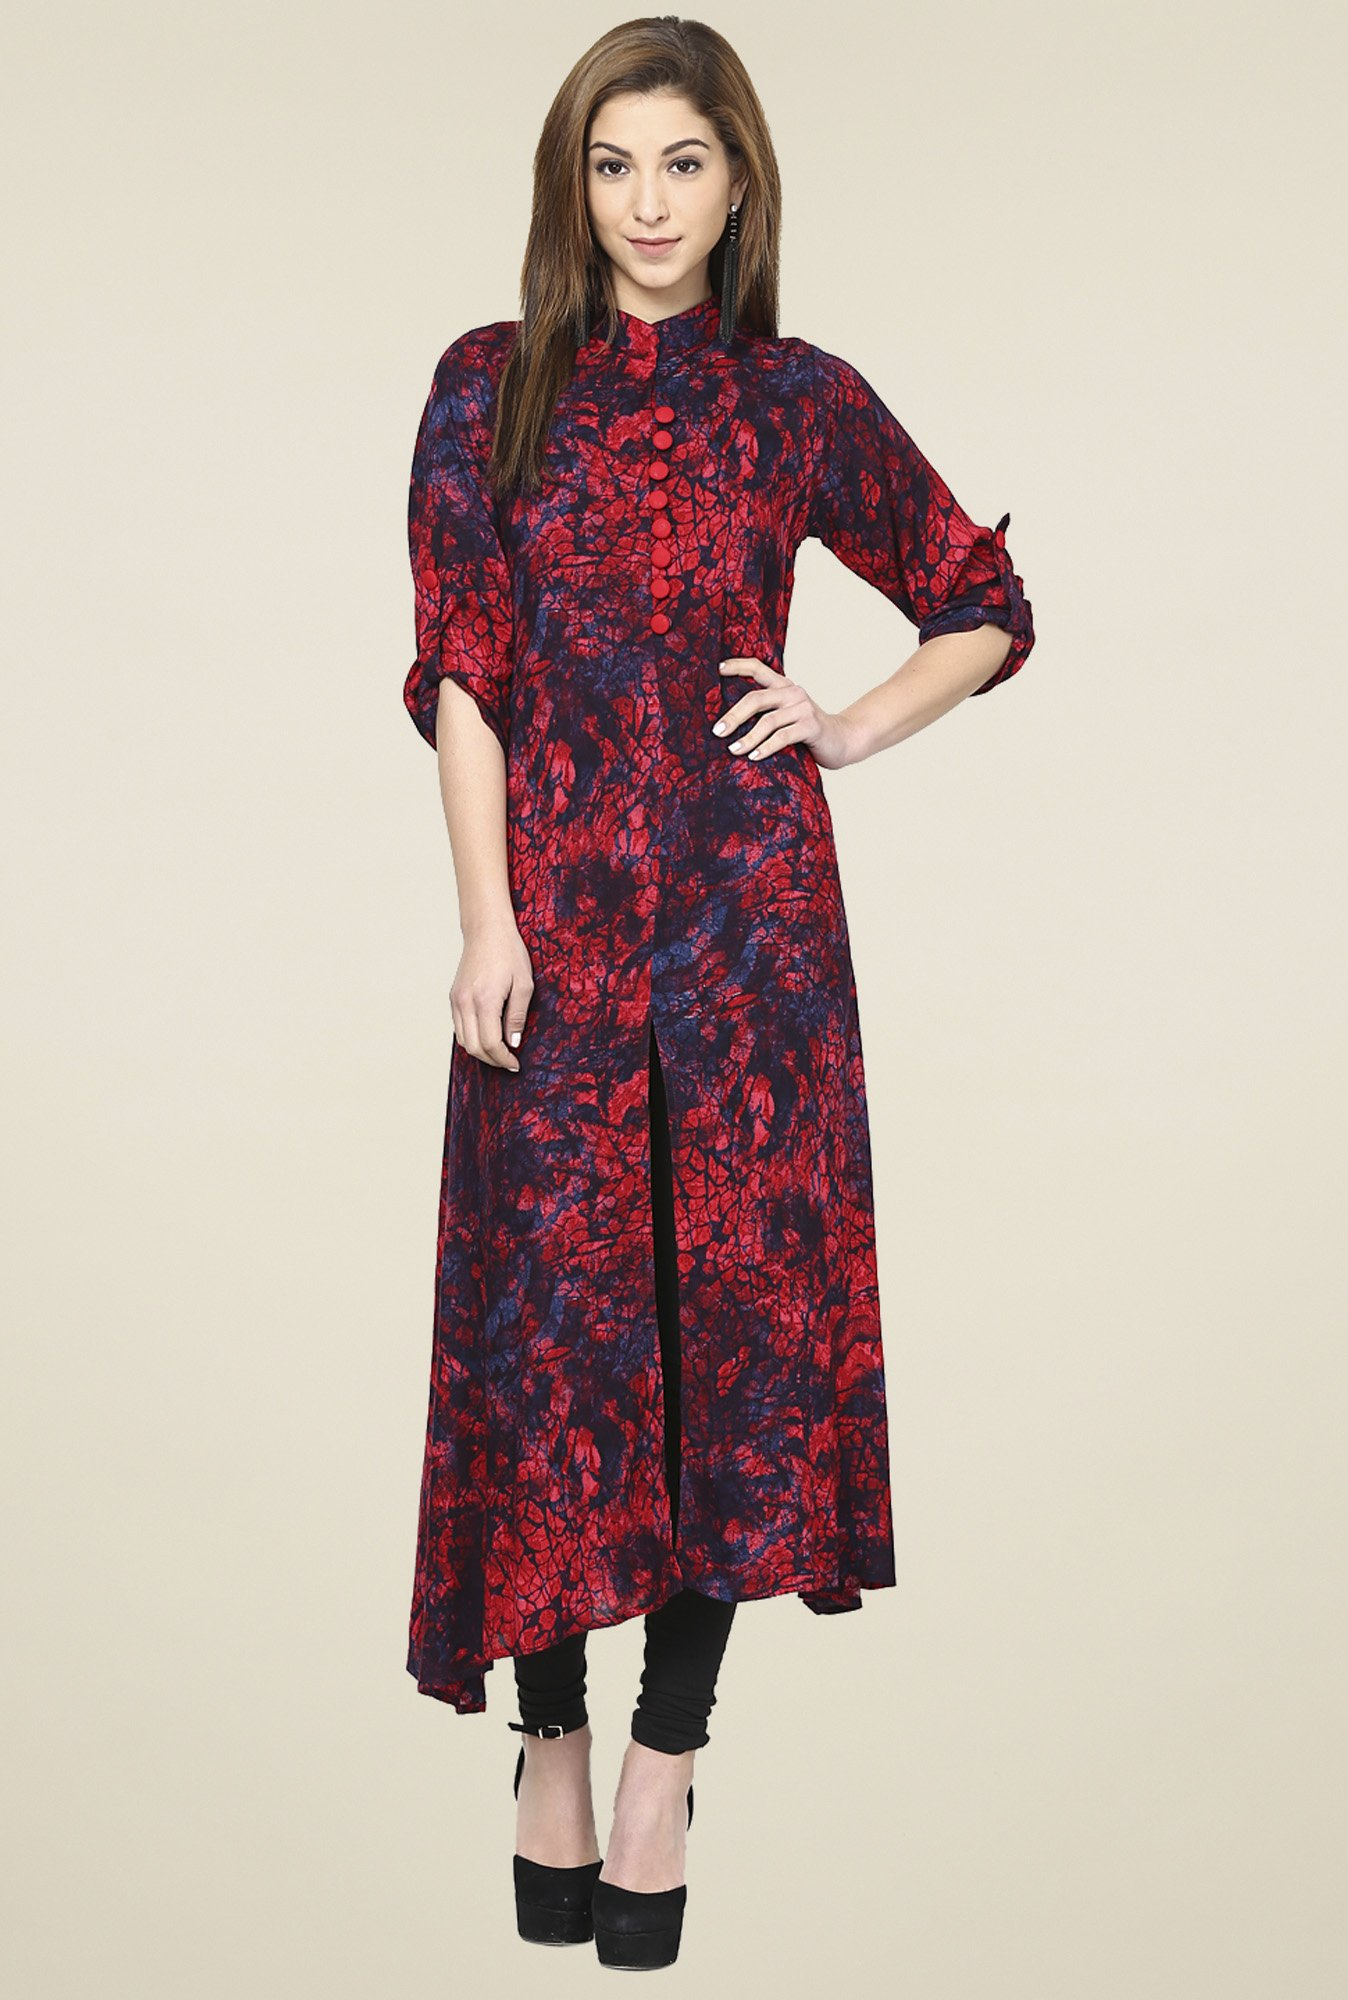 Aujjessa Red & Navy 3/4th Sleeves Kurta